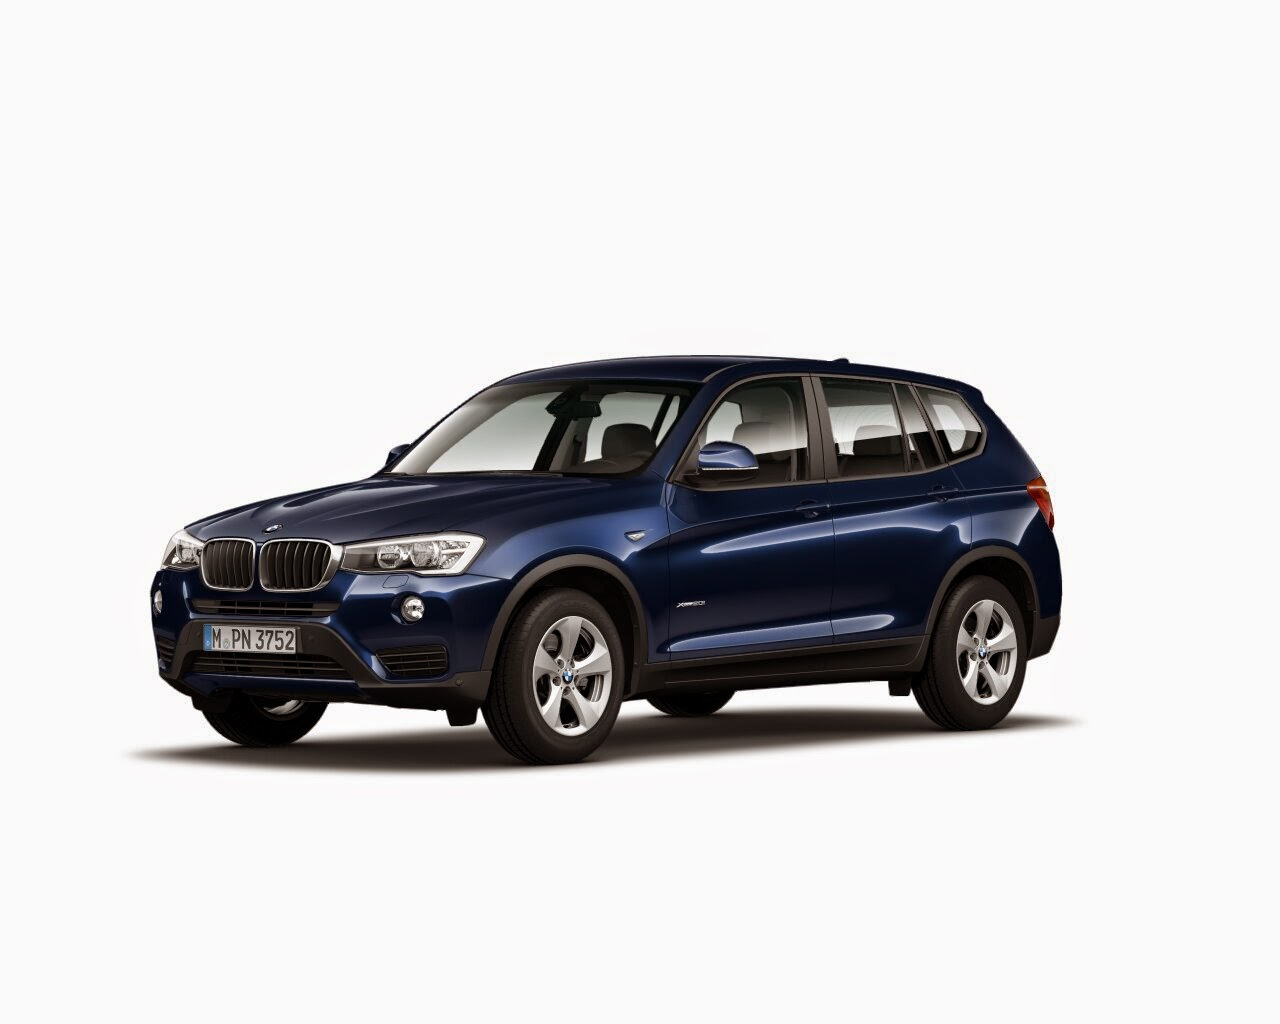 bmw x3 specifications review and configurations classic. Black Bedroom Furniture Sets. Home Design Ideas